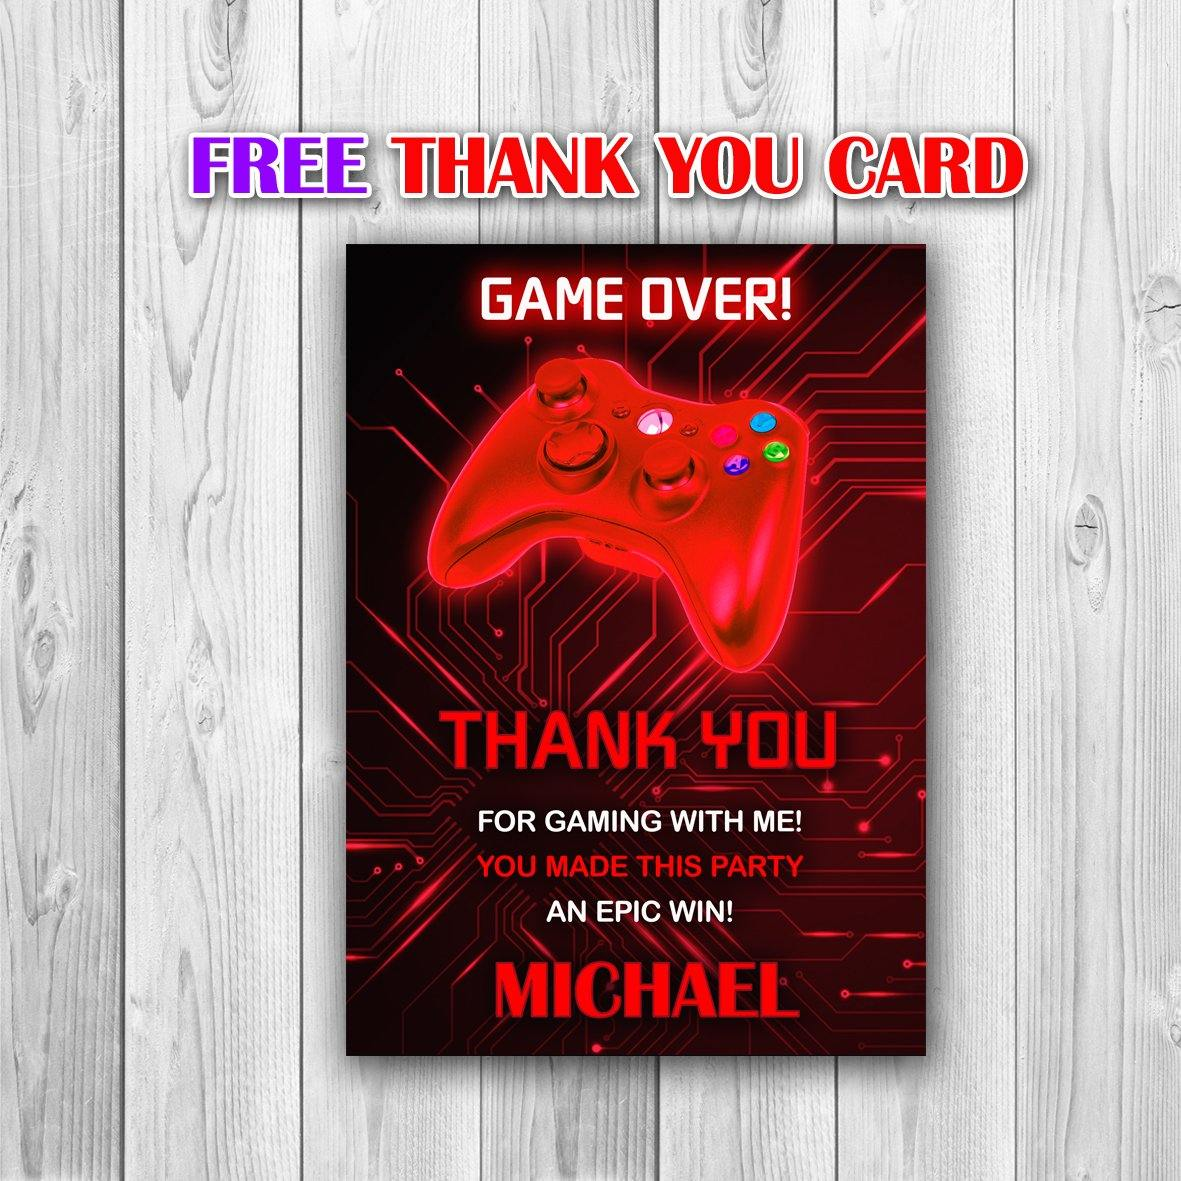 Video Game Party Invitations, Video Game Invitation, Gaming Party Invitation, Video Game Birthday, Video Game Red Invitation - ONLY FILE - mariiadesignshop